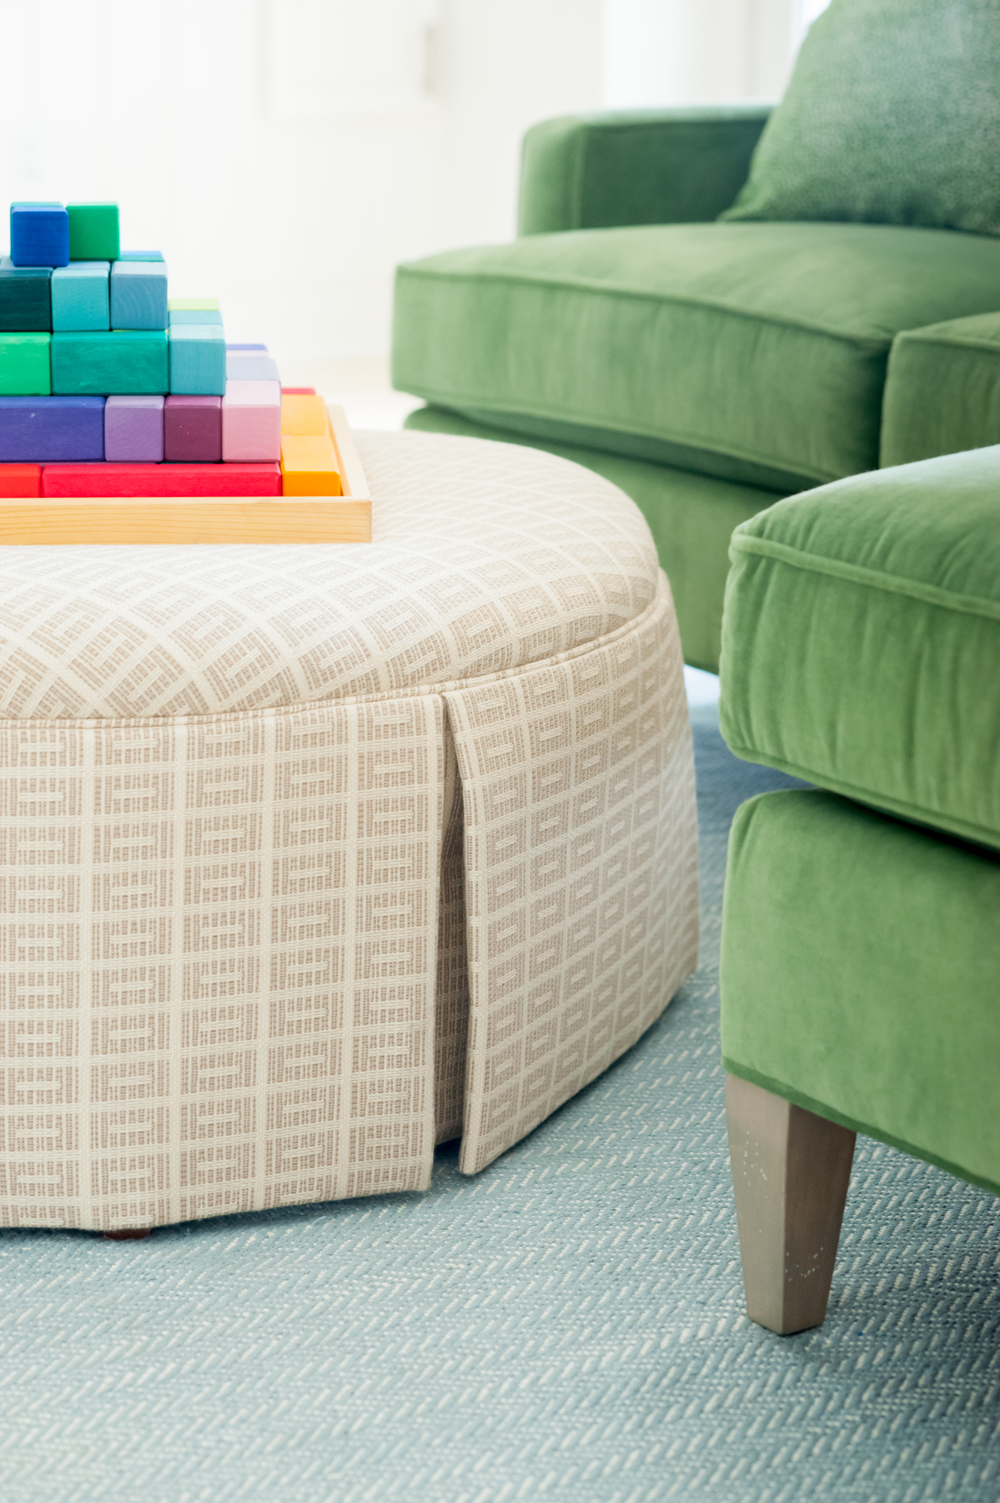 close_up_of_green_couch_and_blocks